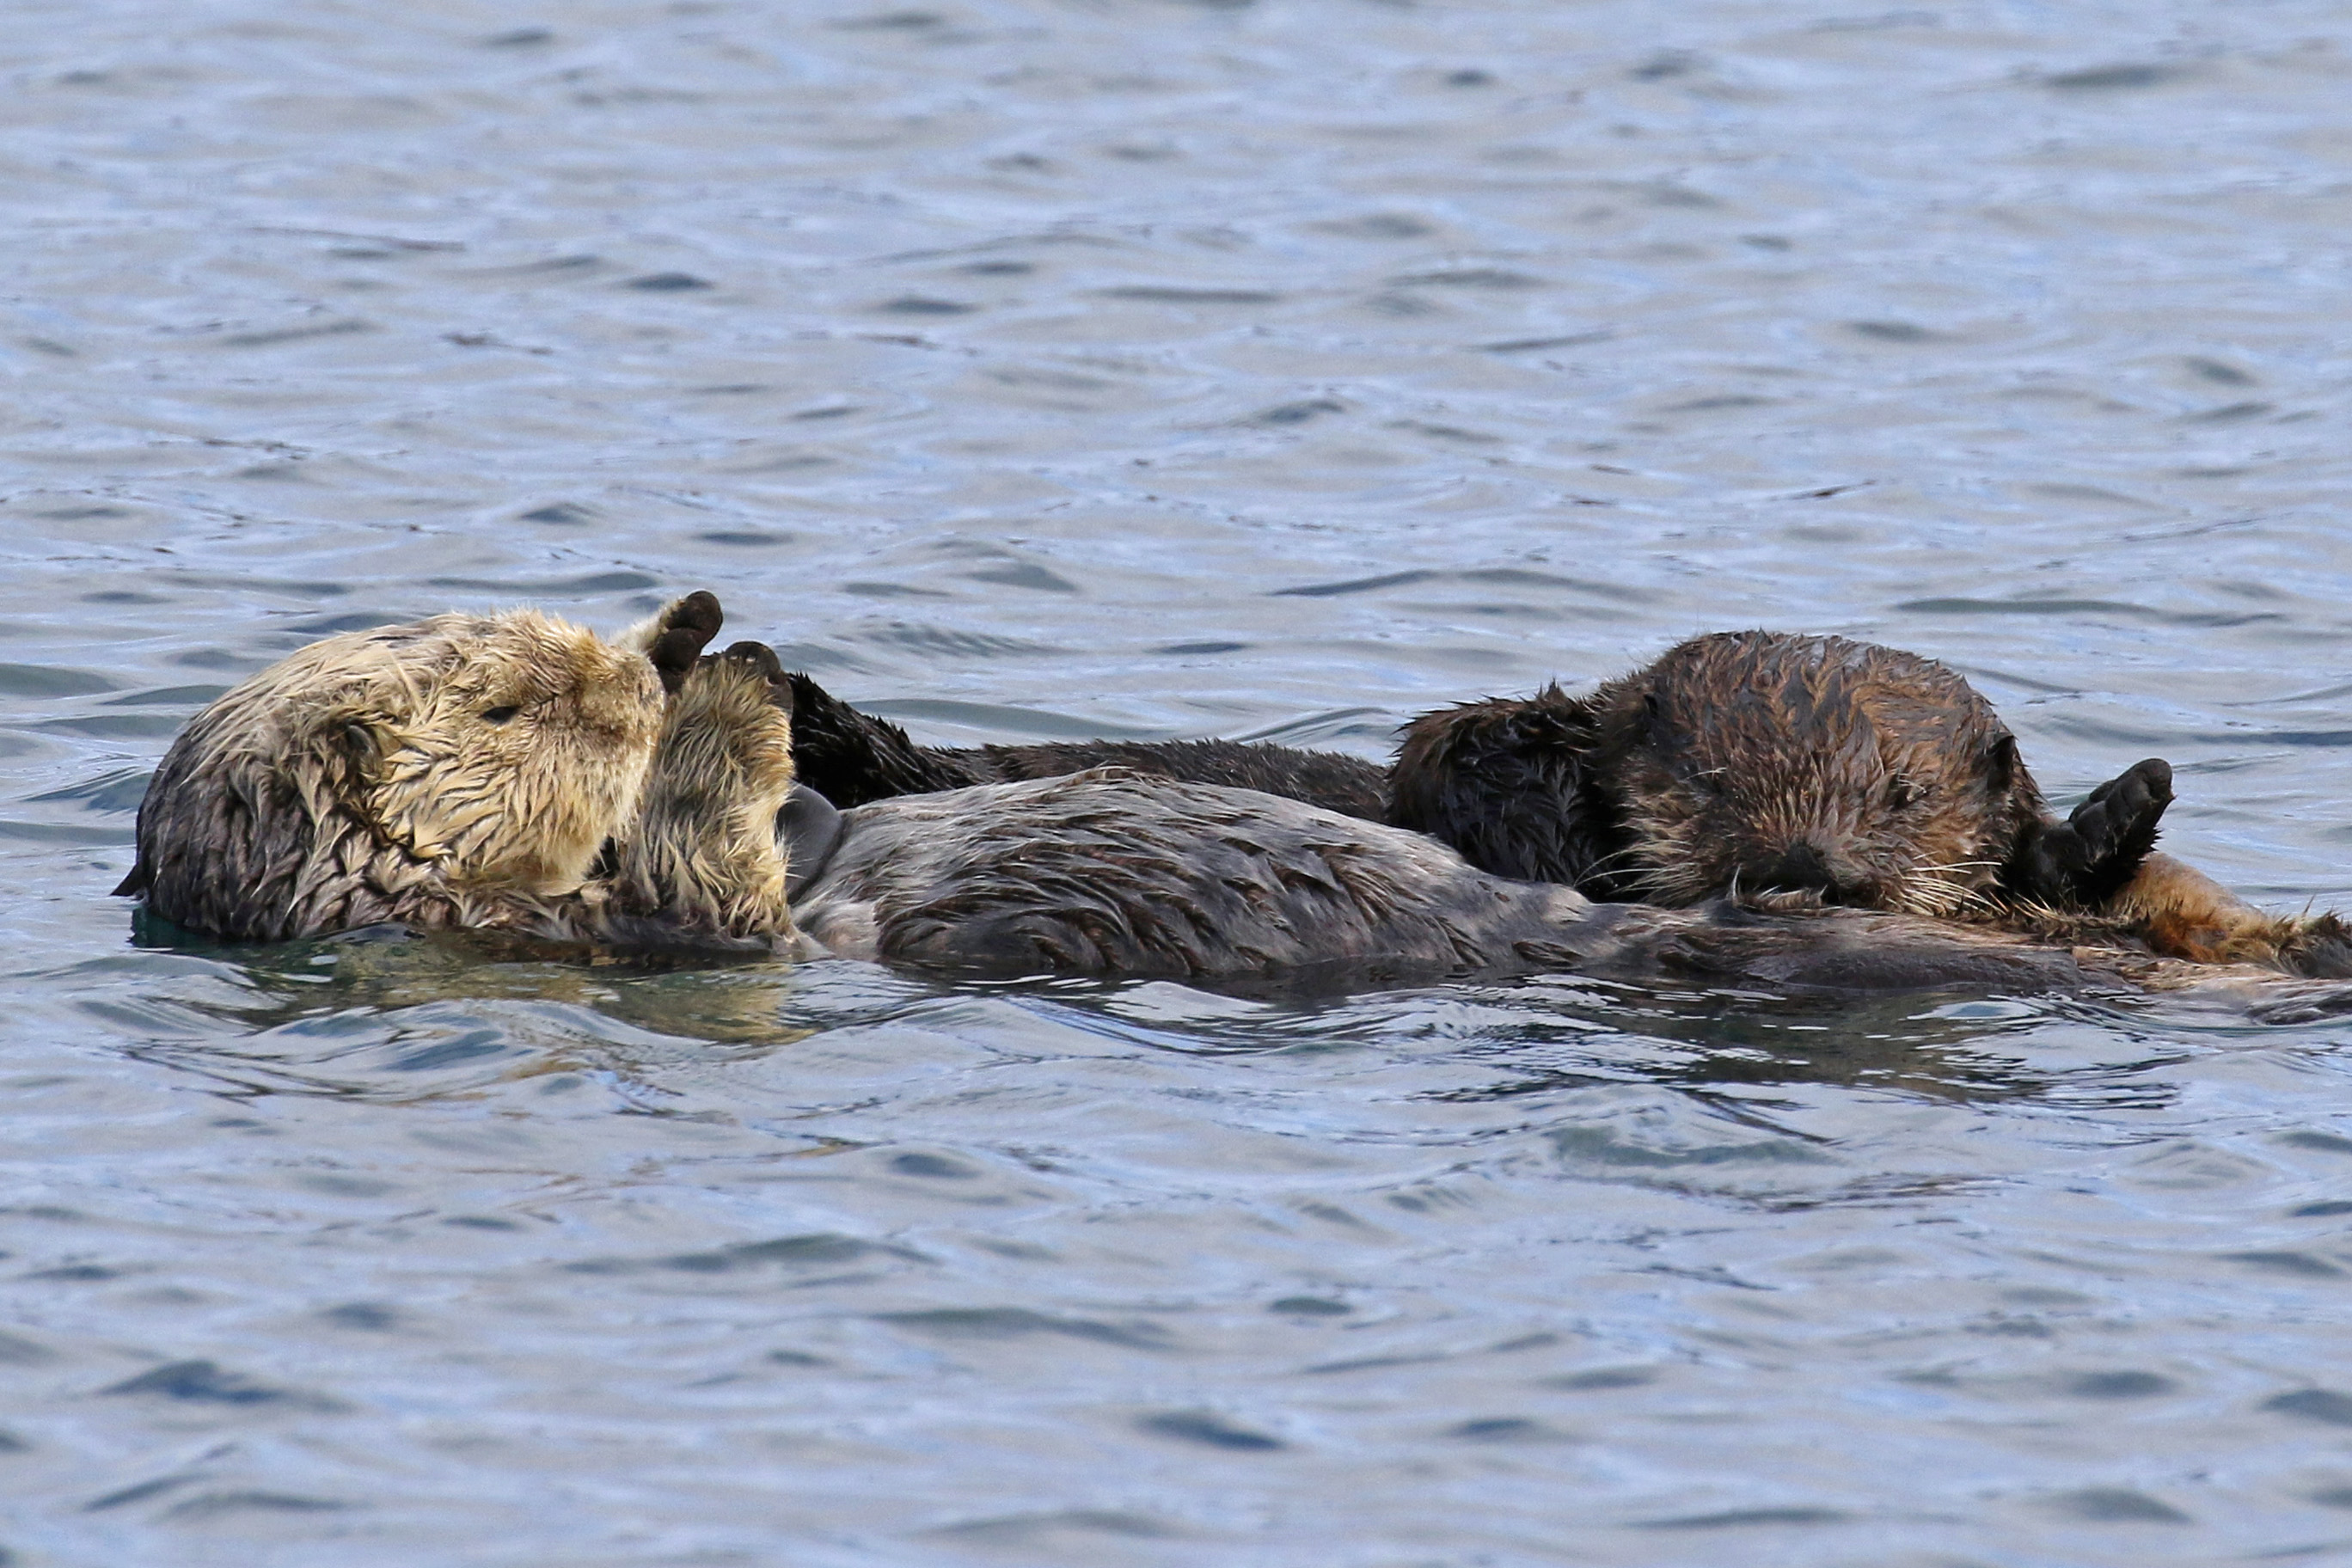 How long do sea otters nurse their pups?